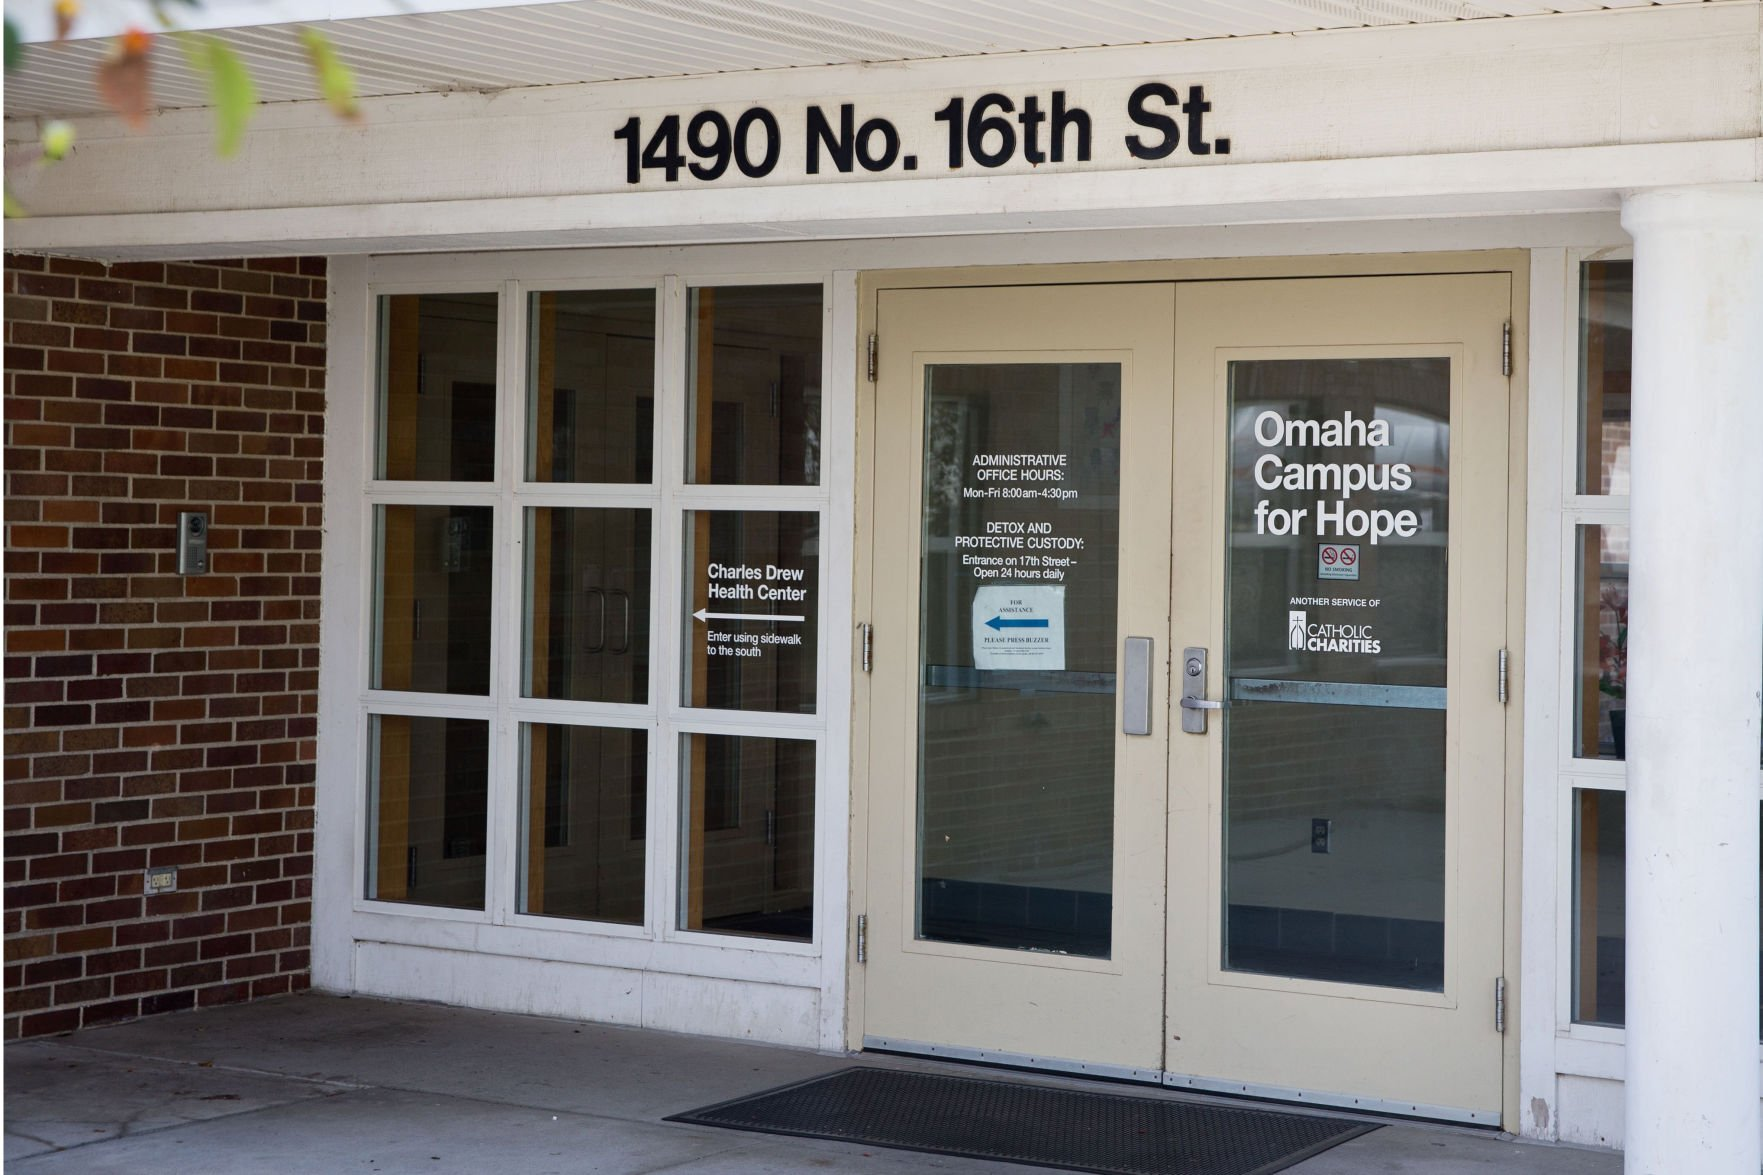 Grace Campus for Hope long run by Catholic Charities gets new